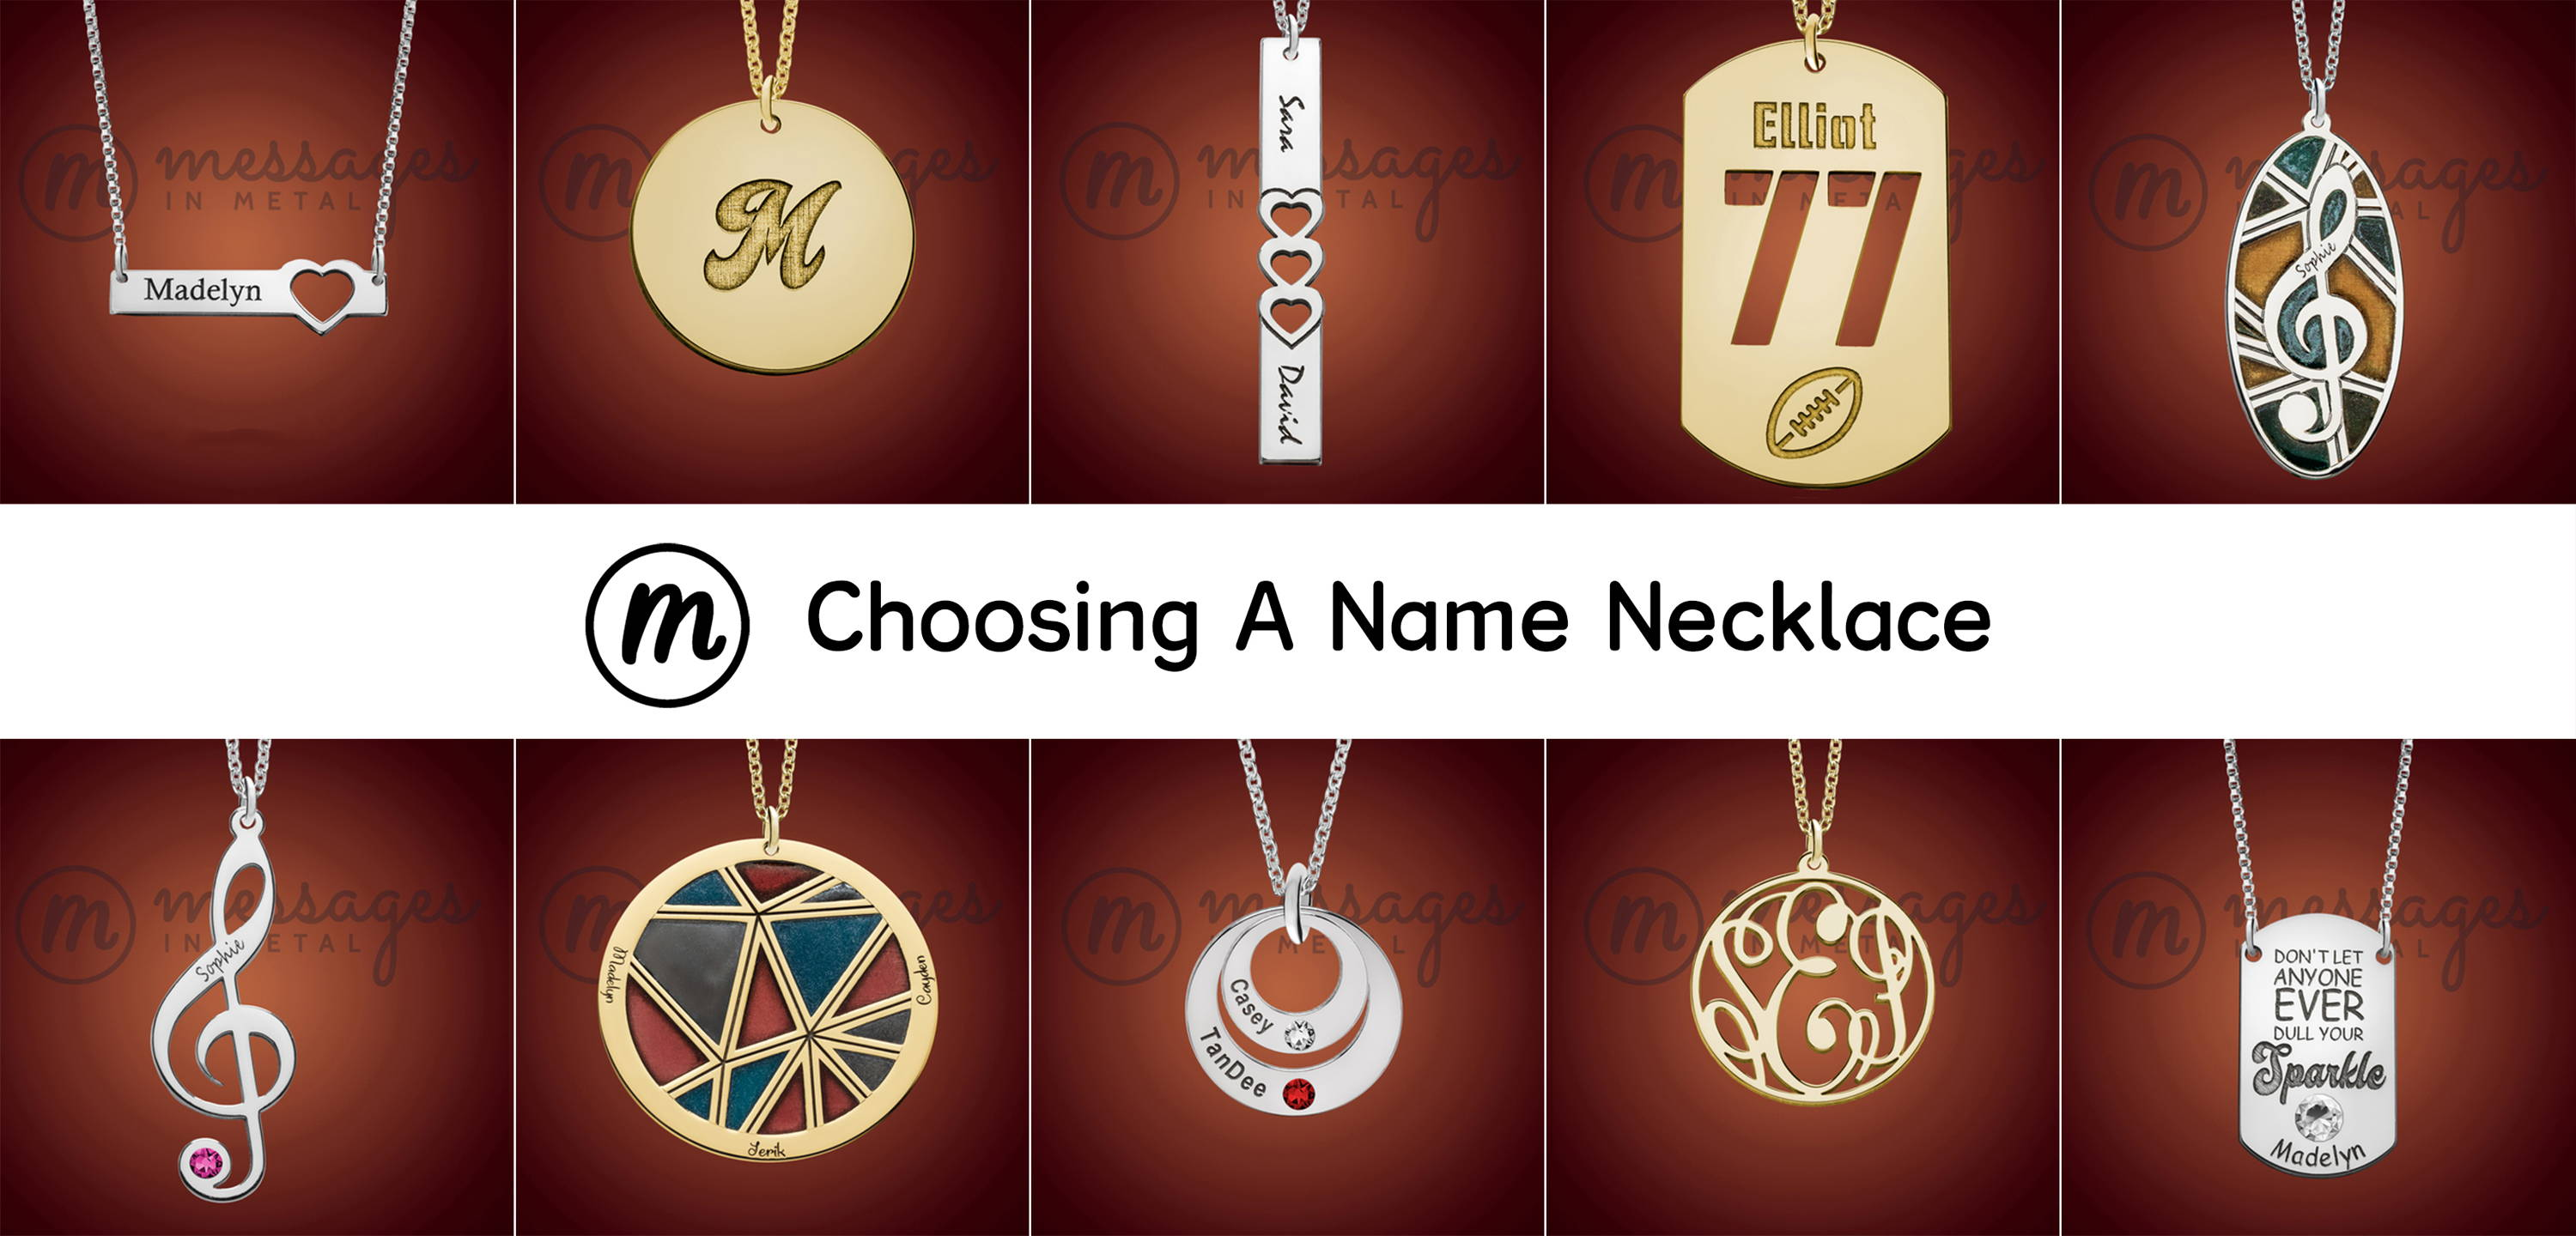 1f5030af70b6c Complete Name Necklace Buying Guide, Choosing A Name Necklace